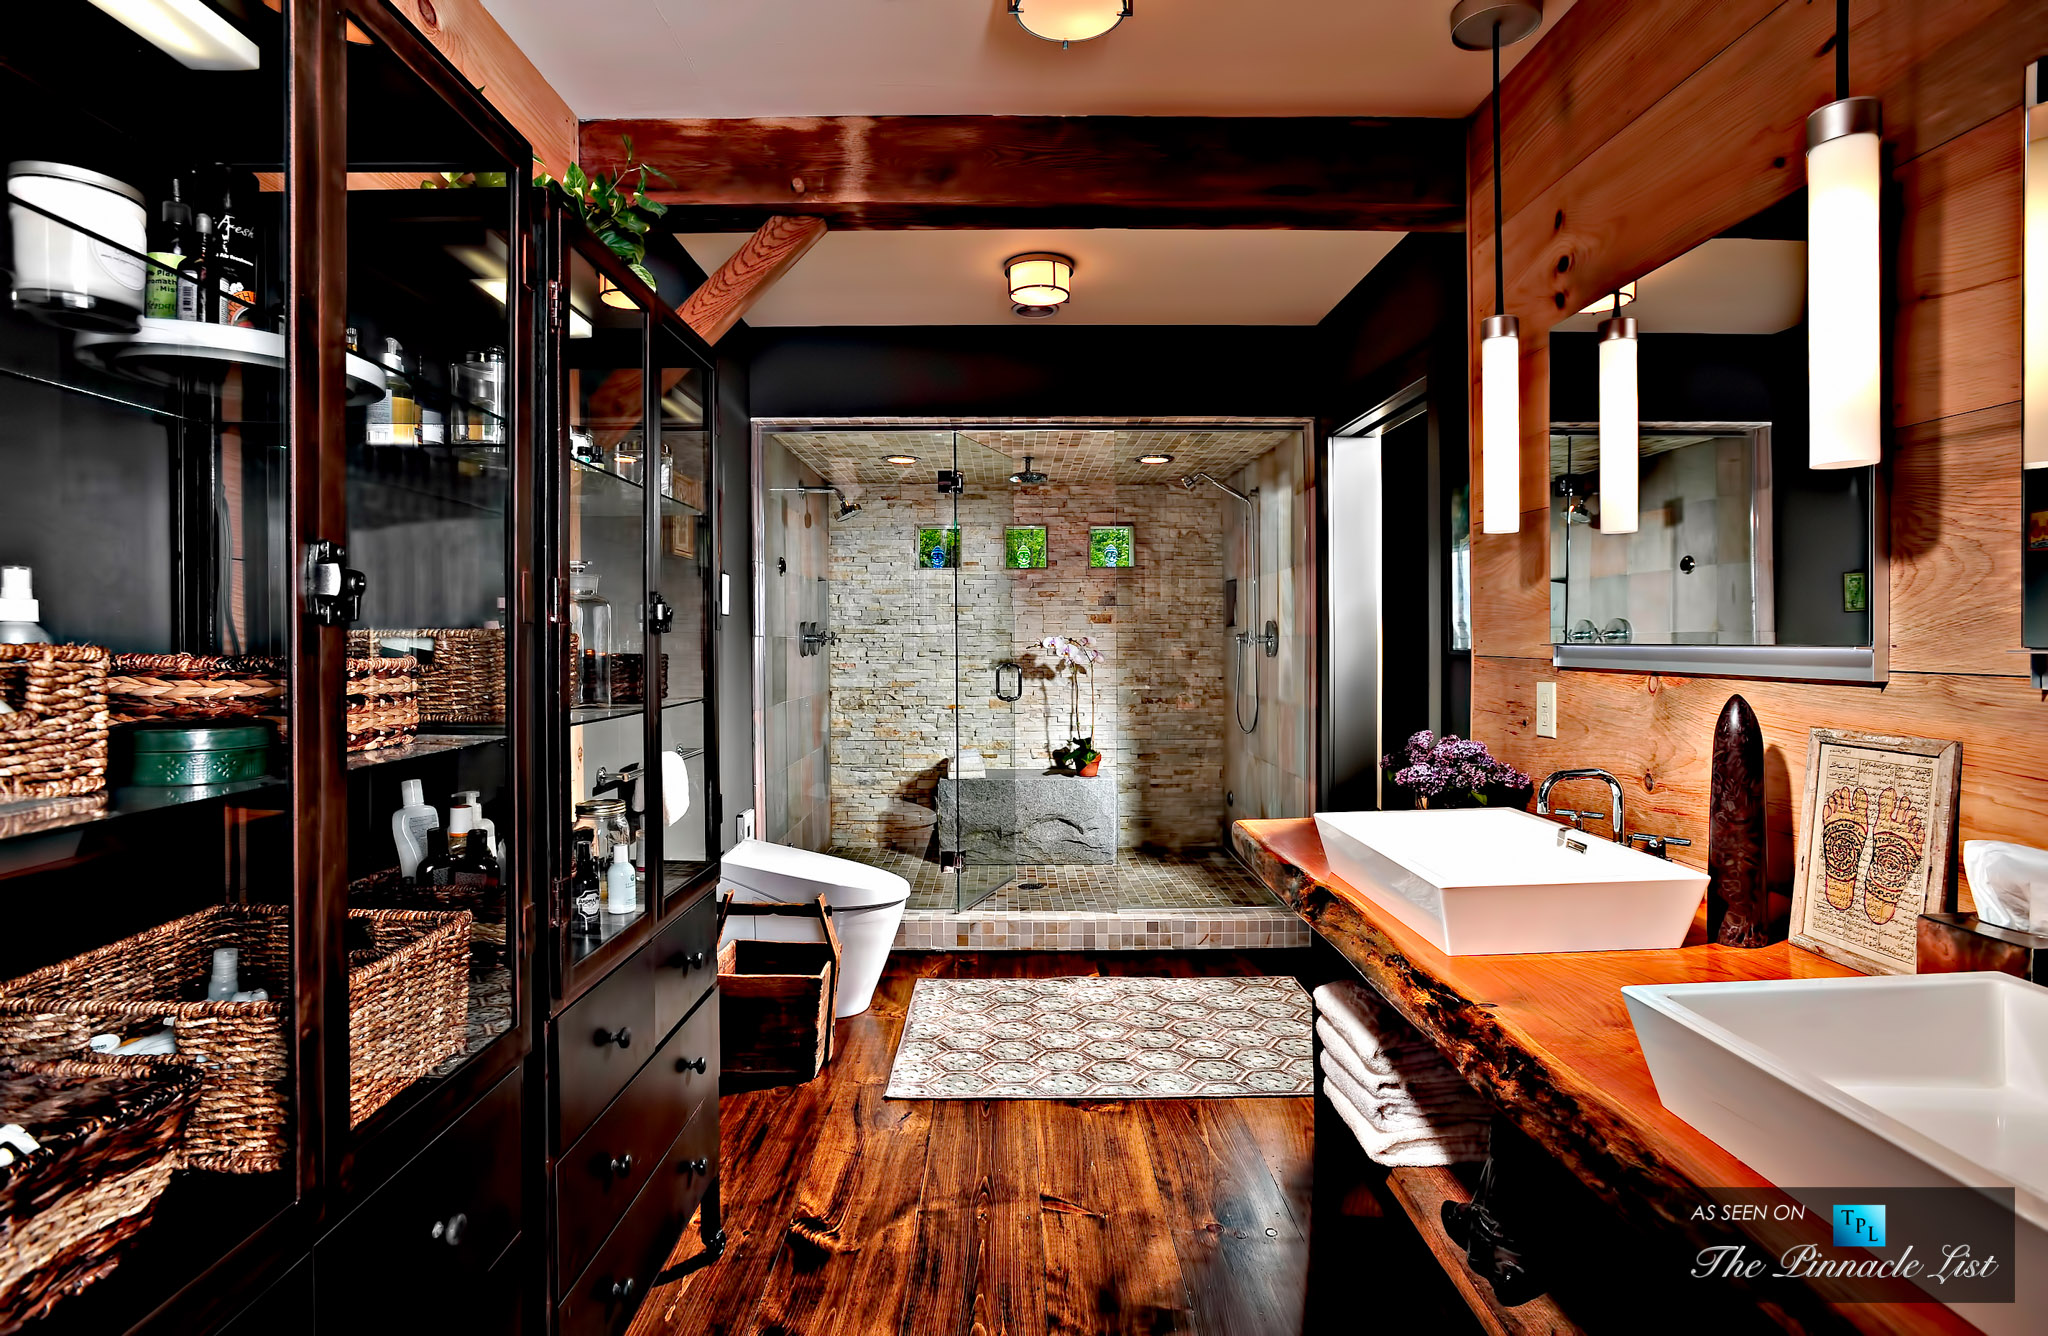 Go Natural - Luxury Home Design - 4 High-End Bathroom Installation Ideas